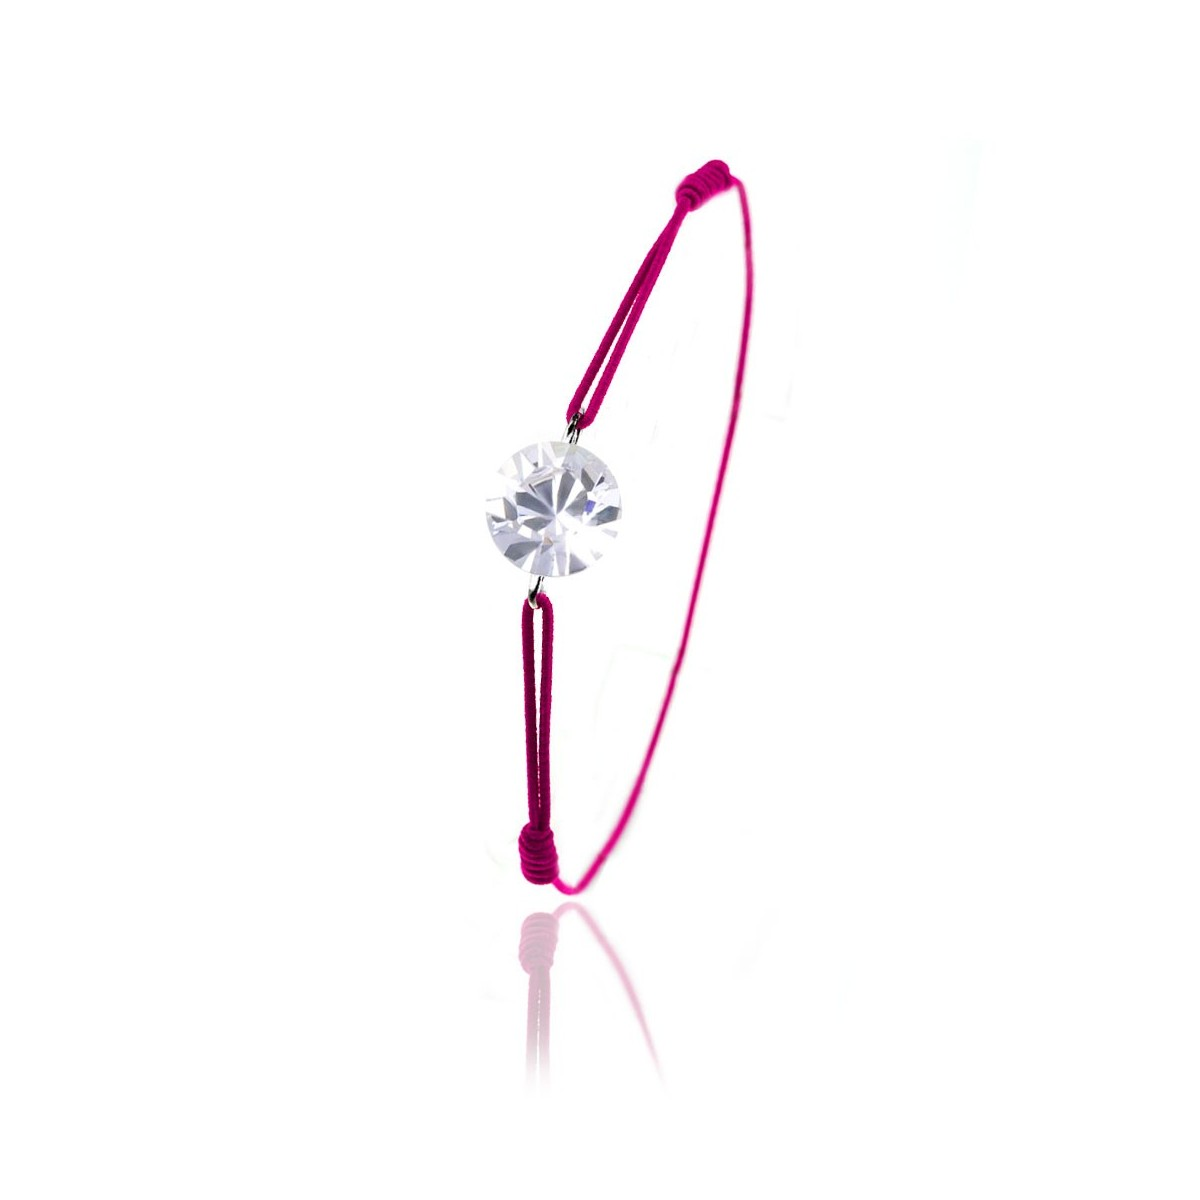 Bracelet élastique rose So Charm made with Crystal from Swarovski